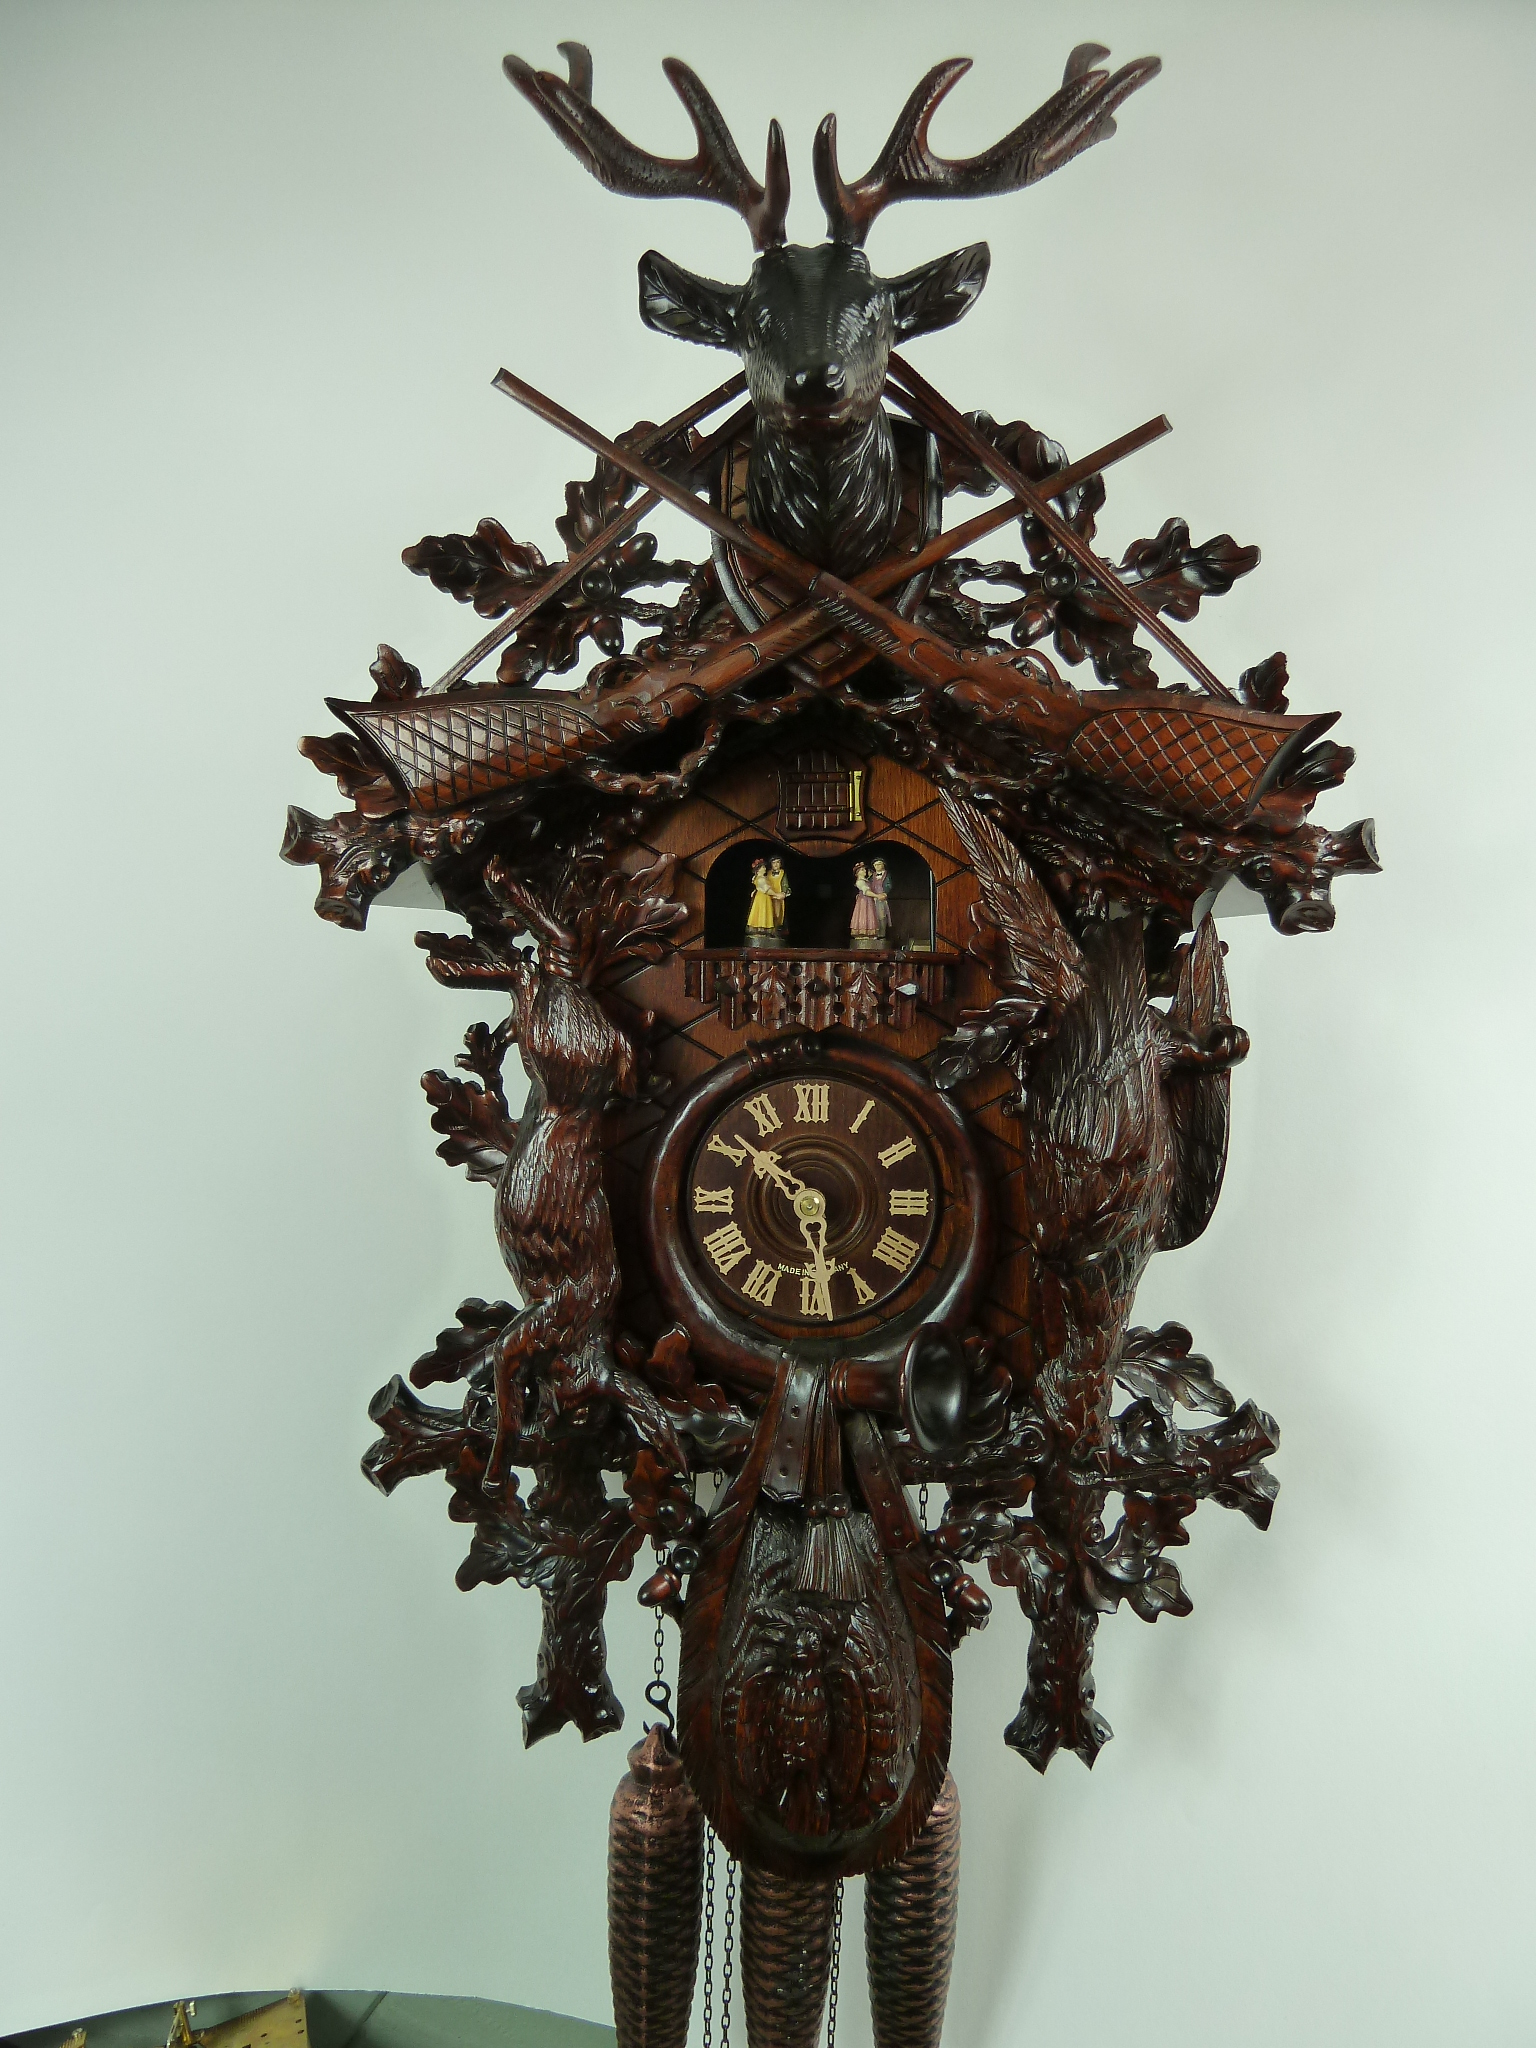 Master Carved Black Forest Hunting Cuckoo Clock 5 0133 01 P